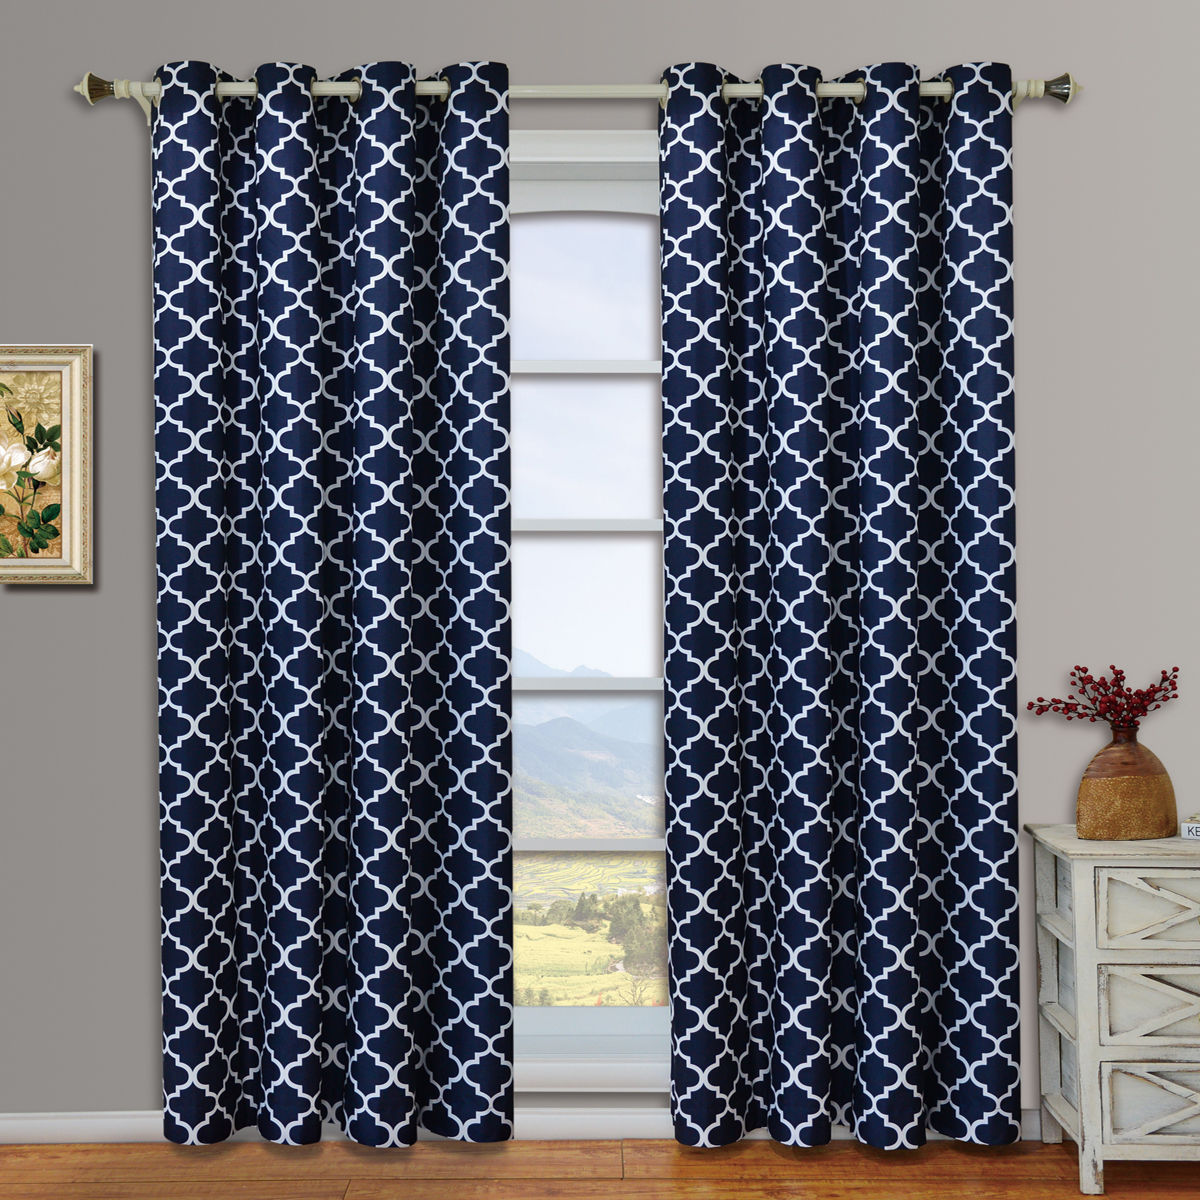 Insulated Thermal Drapes | Thermal Curtain Backing | Thermal Insulated Curtains